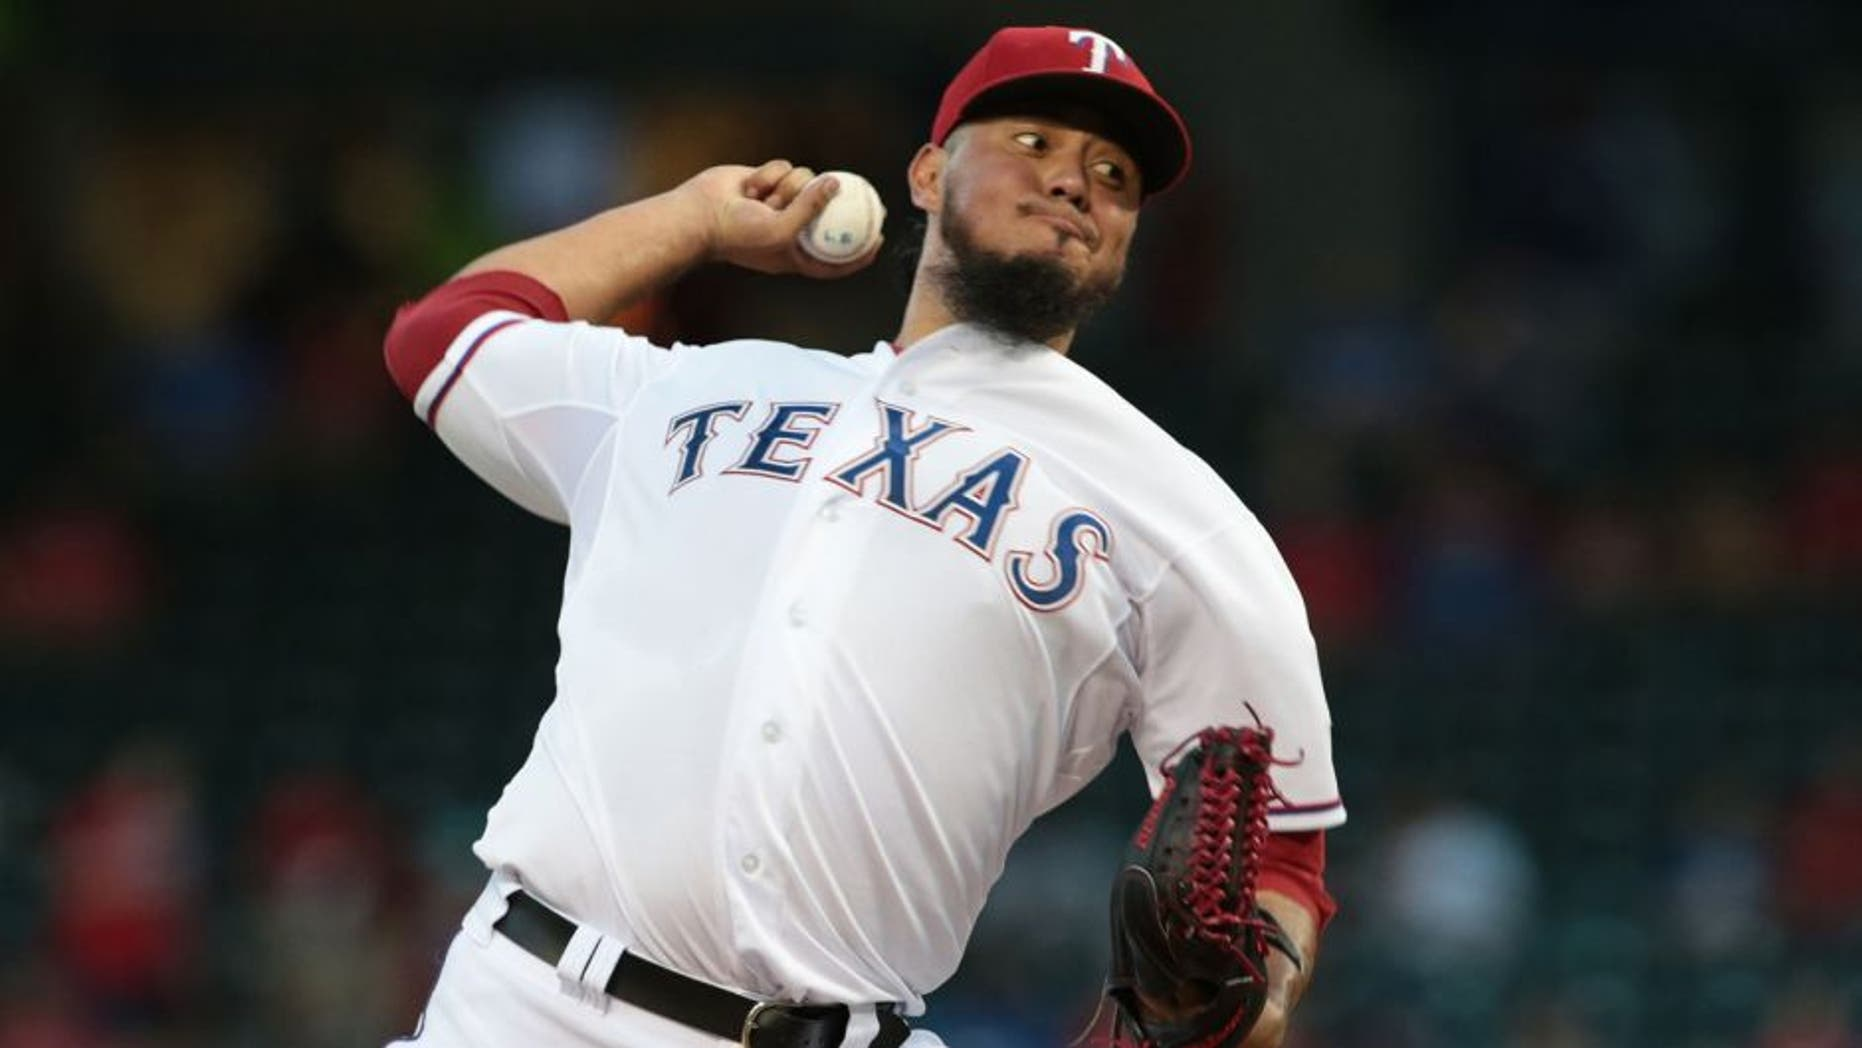 ARLINGTON, TX - SEPTEMBER 18: Yovani Gallardo #49 of the Texas Rangers throws in the first inning Seattle Mariners at Global Life Park in Arlington on September 18, 2015 in Arlington, Texas. (Photo by Rick Yeatts/Getty Images)